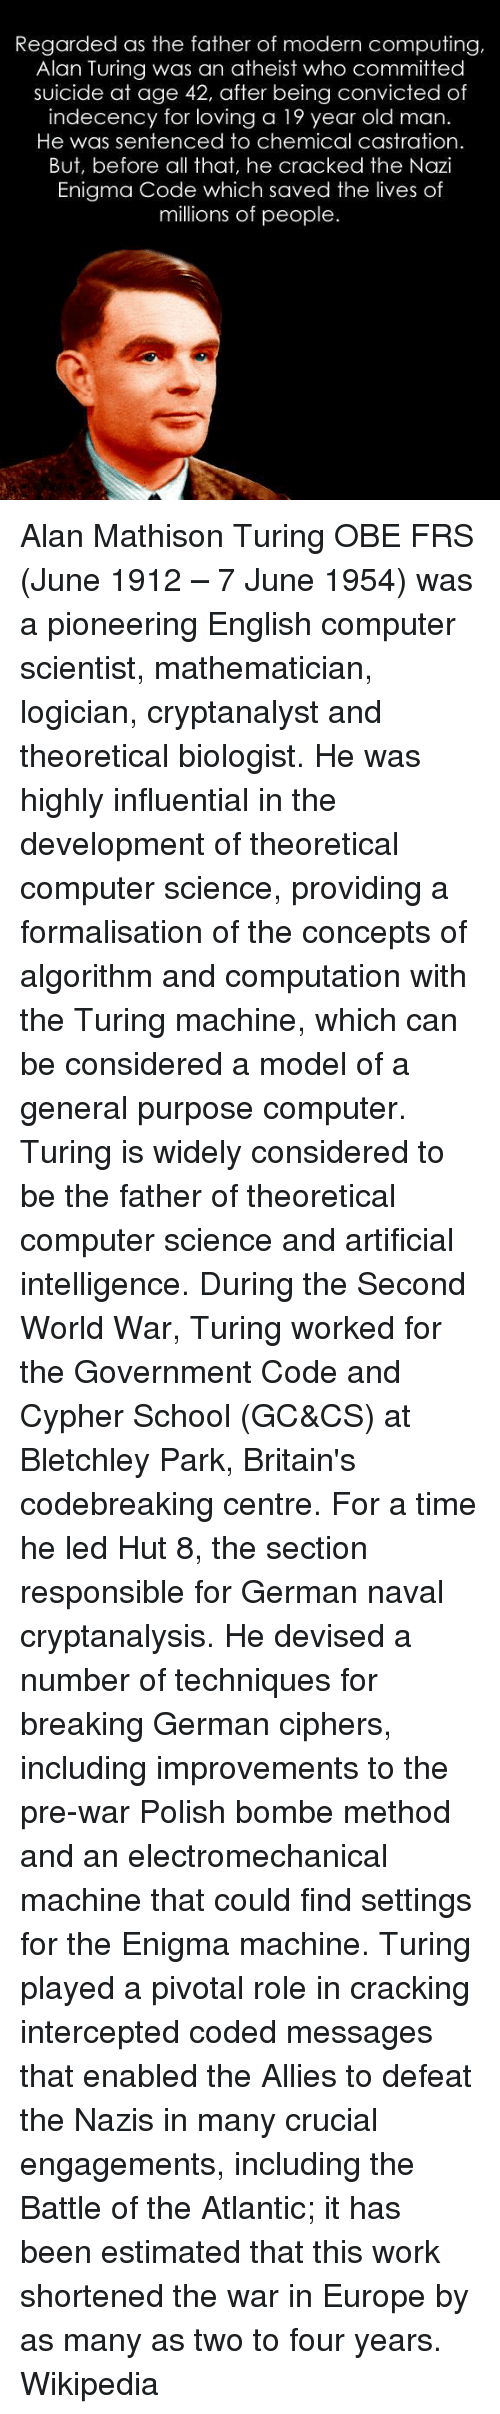 alan turing the father of modern